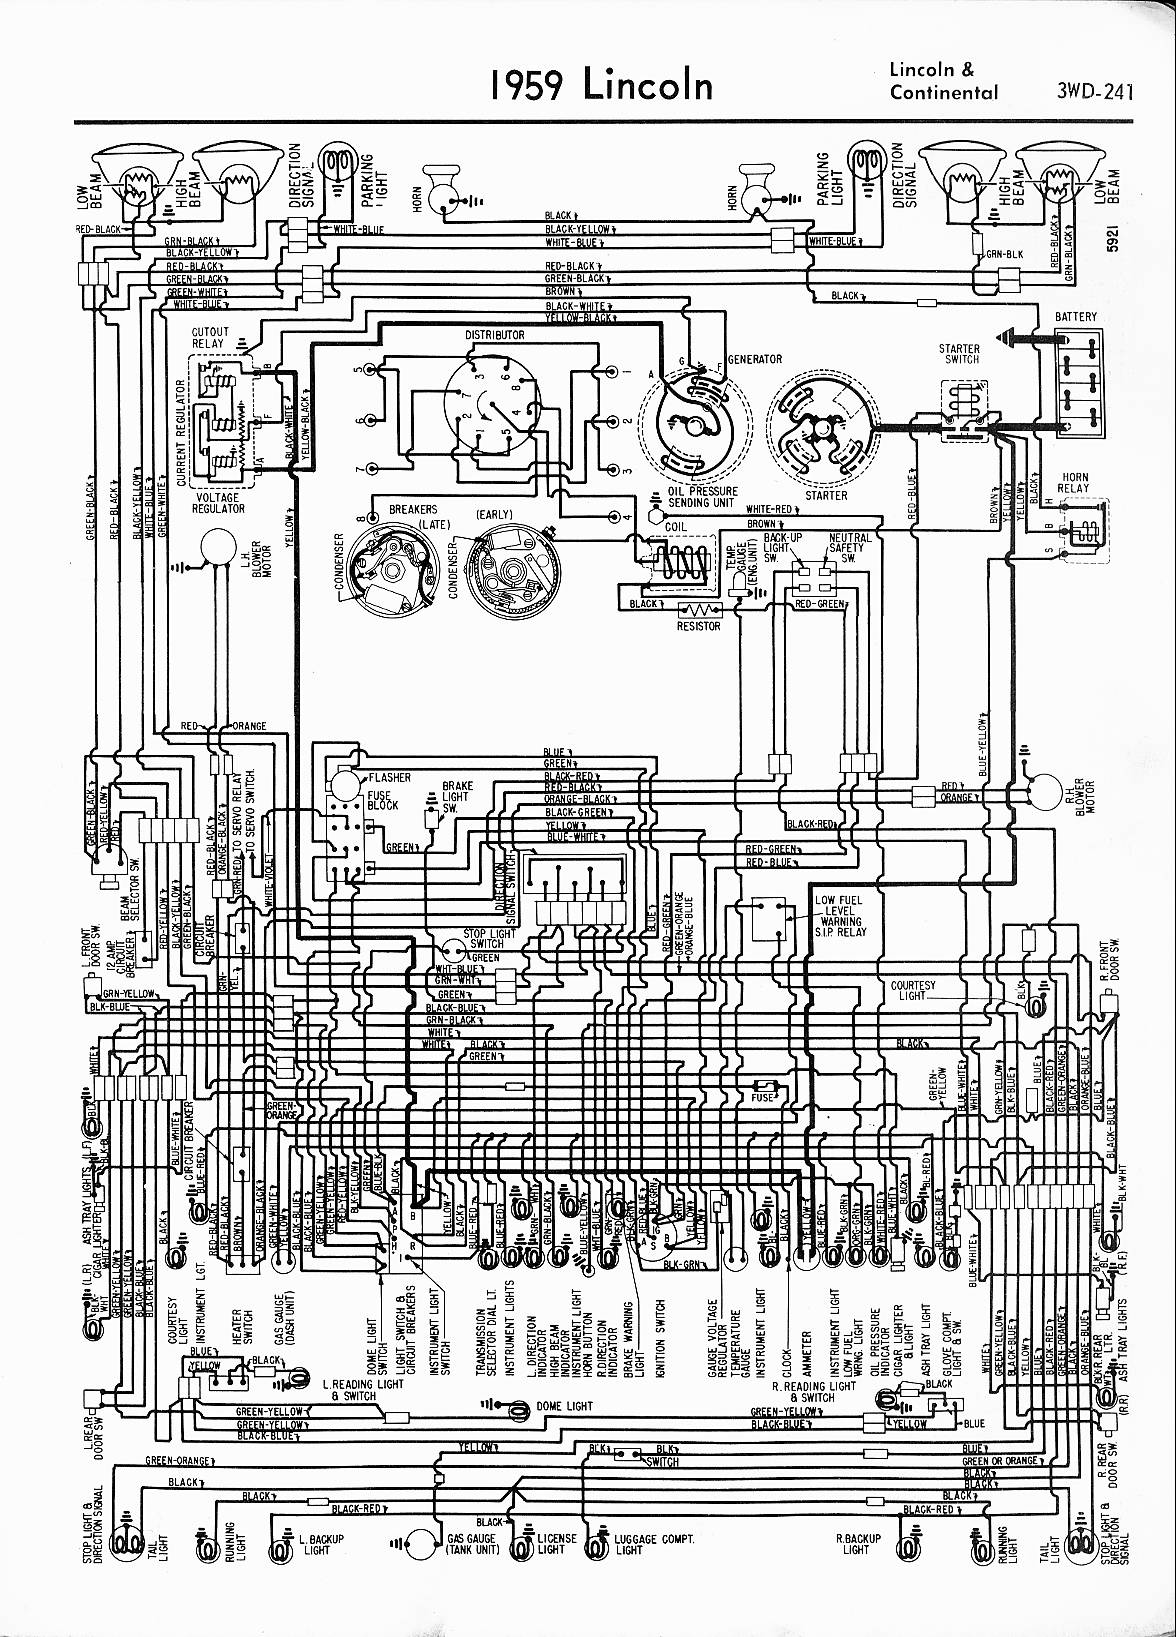 MWireLin_Lin57_z3wd 241z_004 images of 1961 lincoln continental wiring diagram wiring diagram